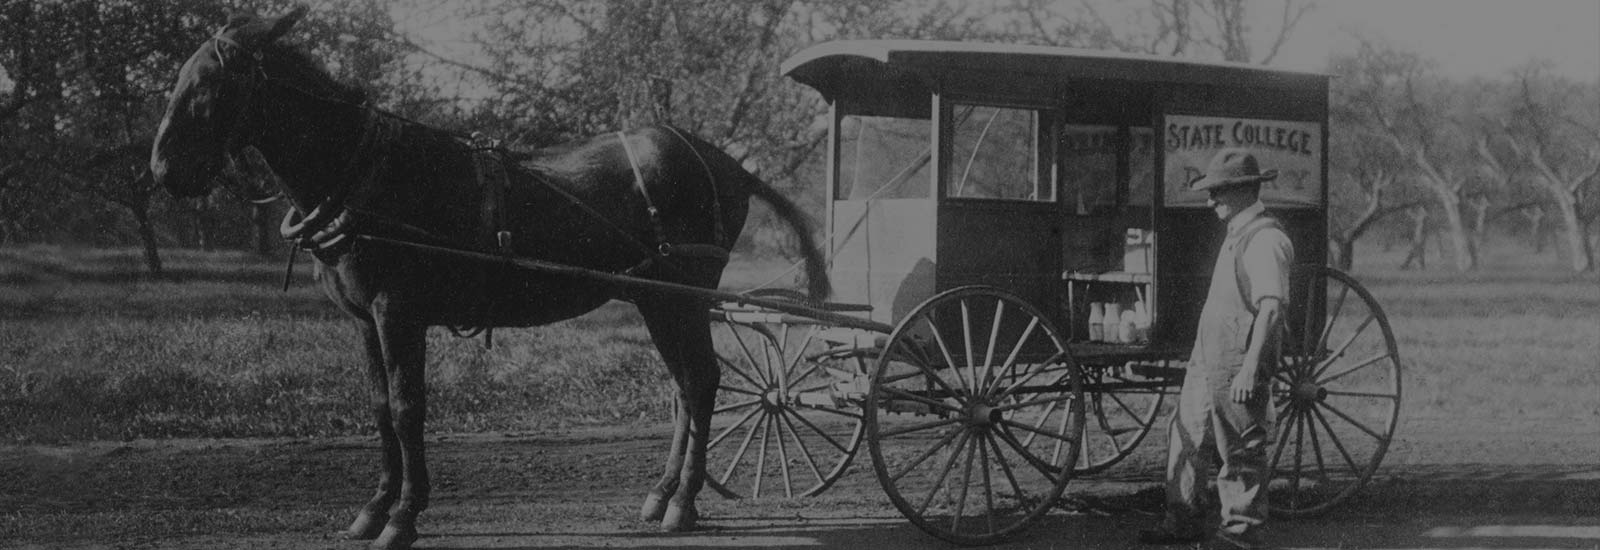 State College Dairy horse delivery wagon